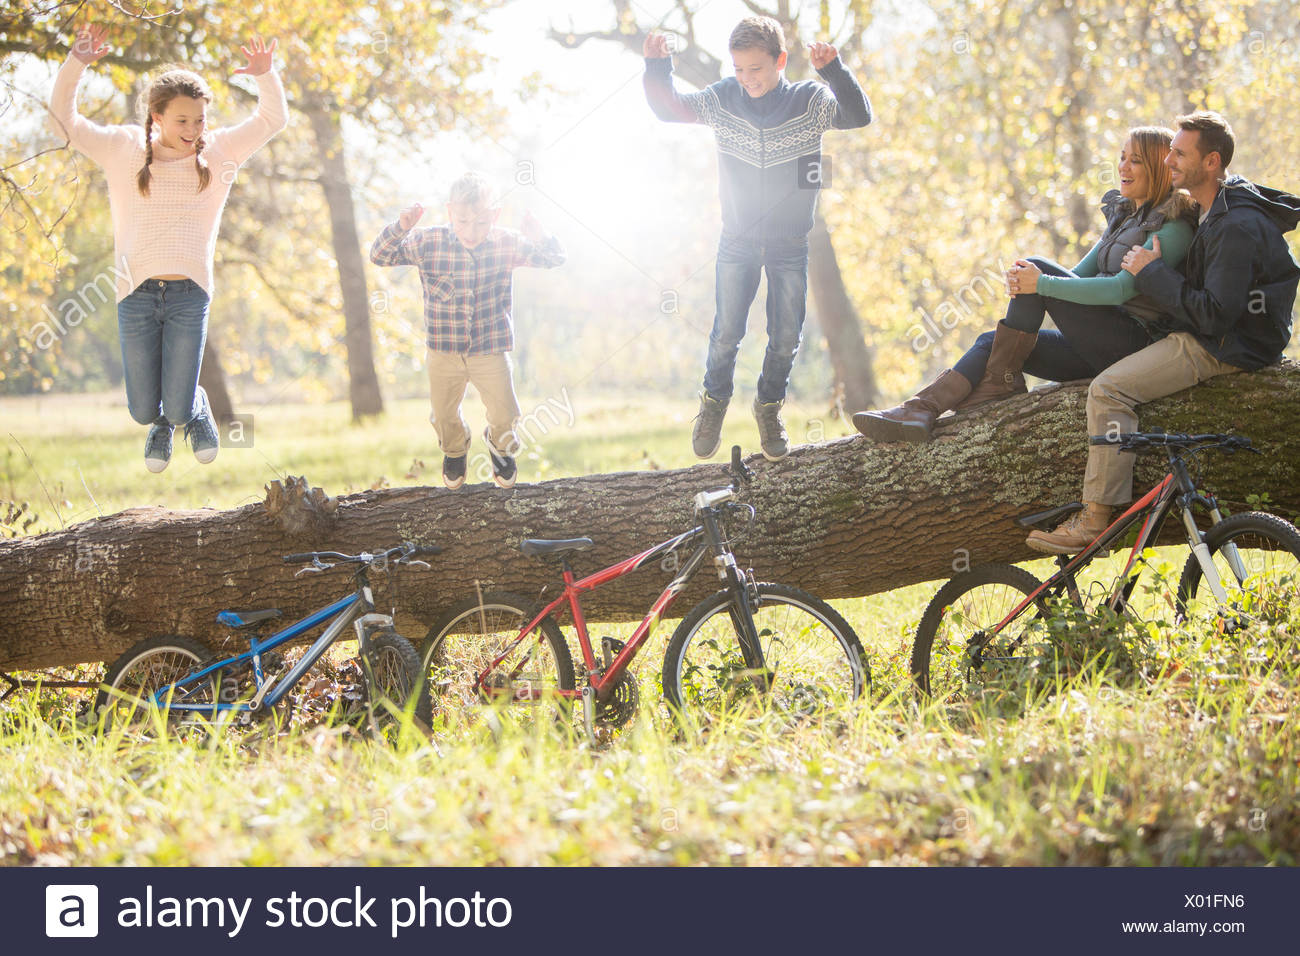 Family playing on fallen log with bicycles in woods Stock Photo